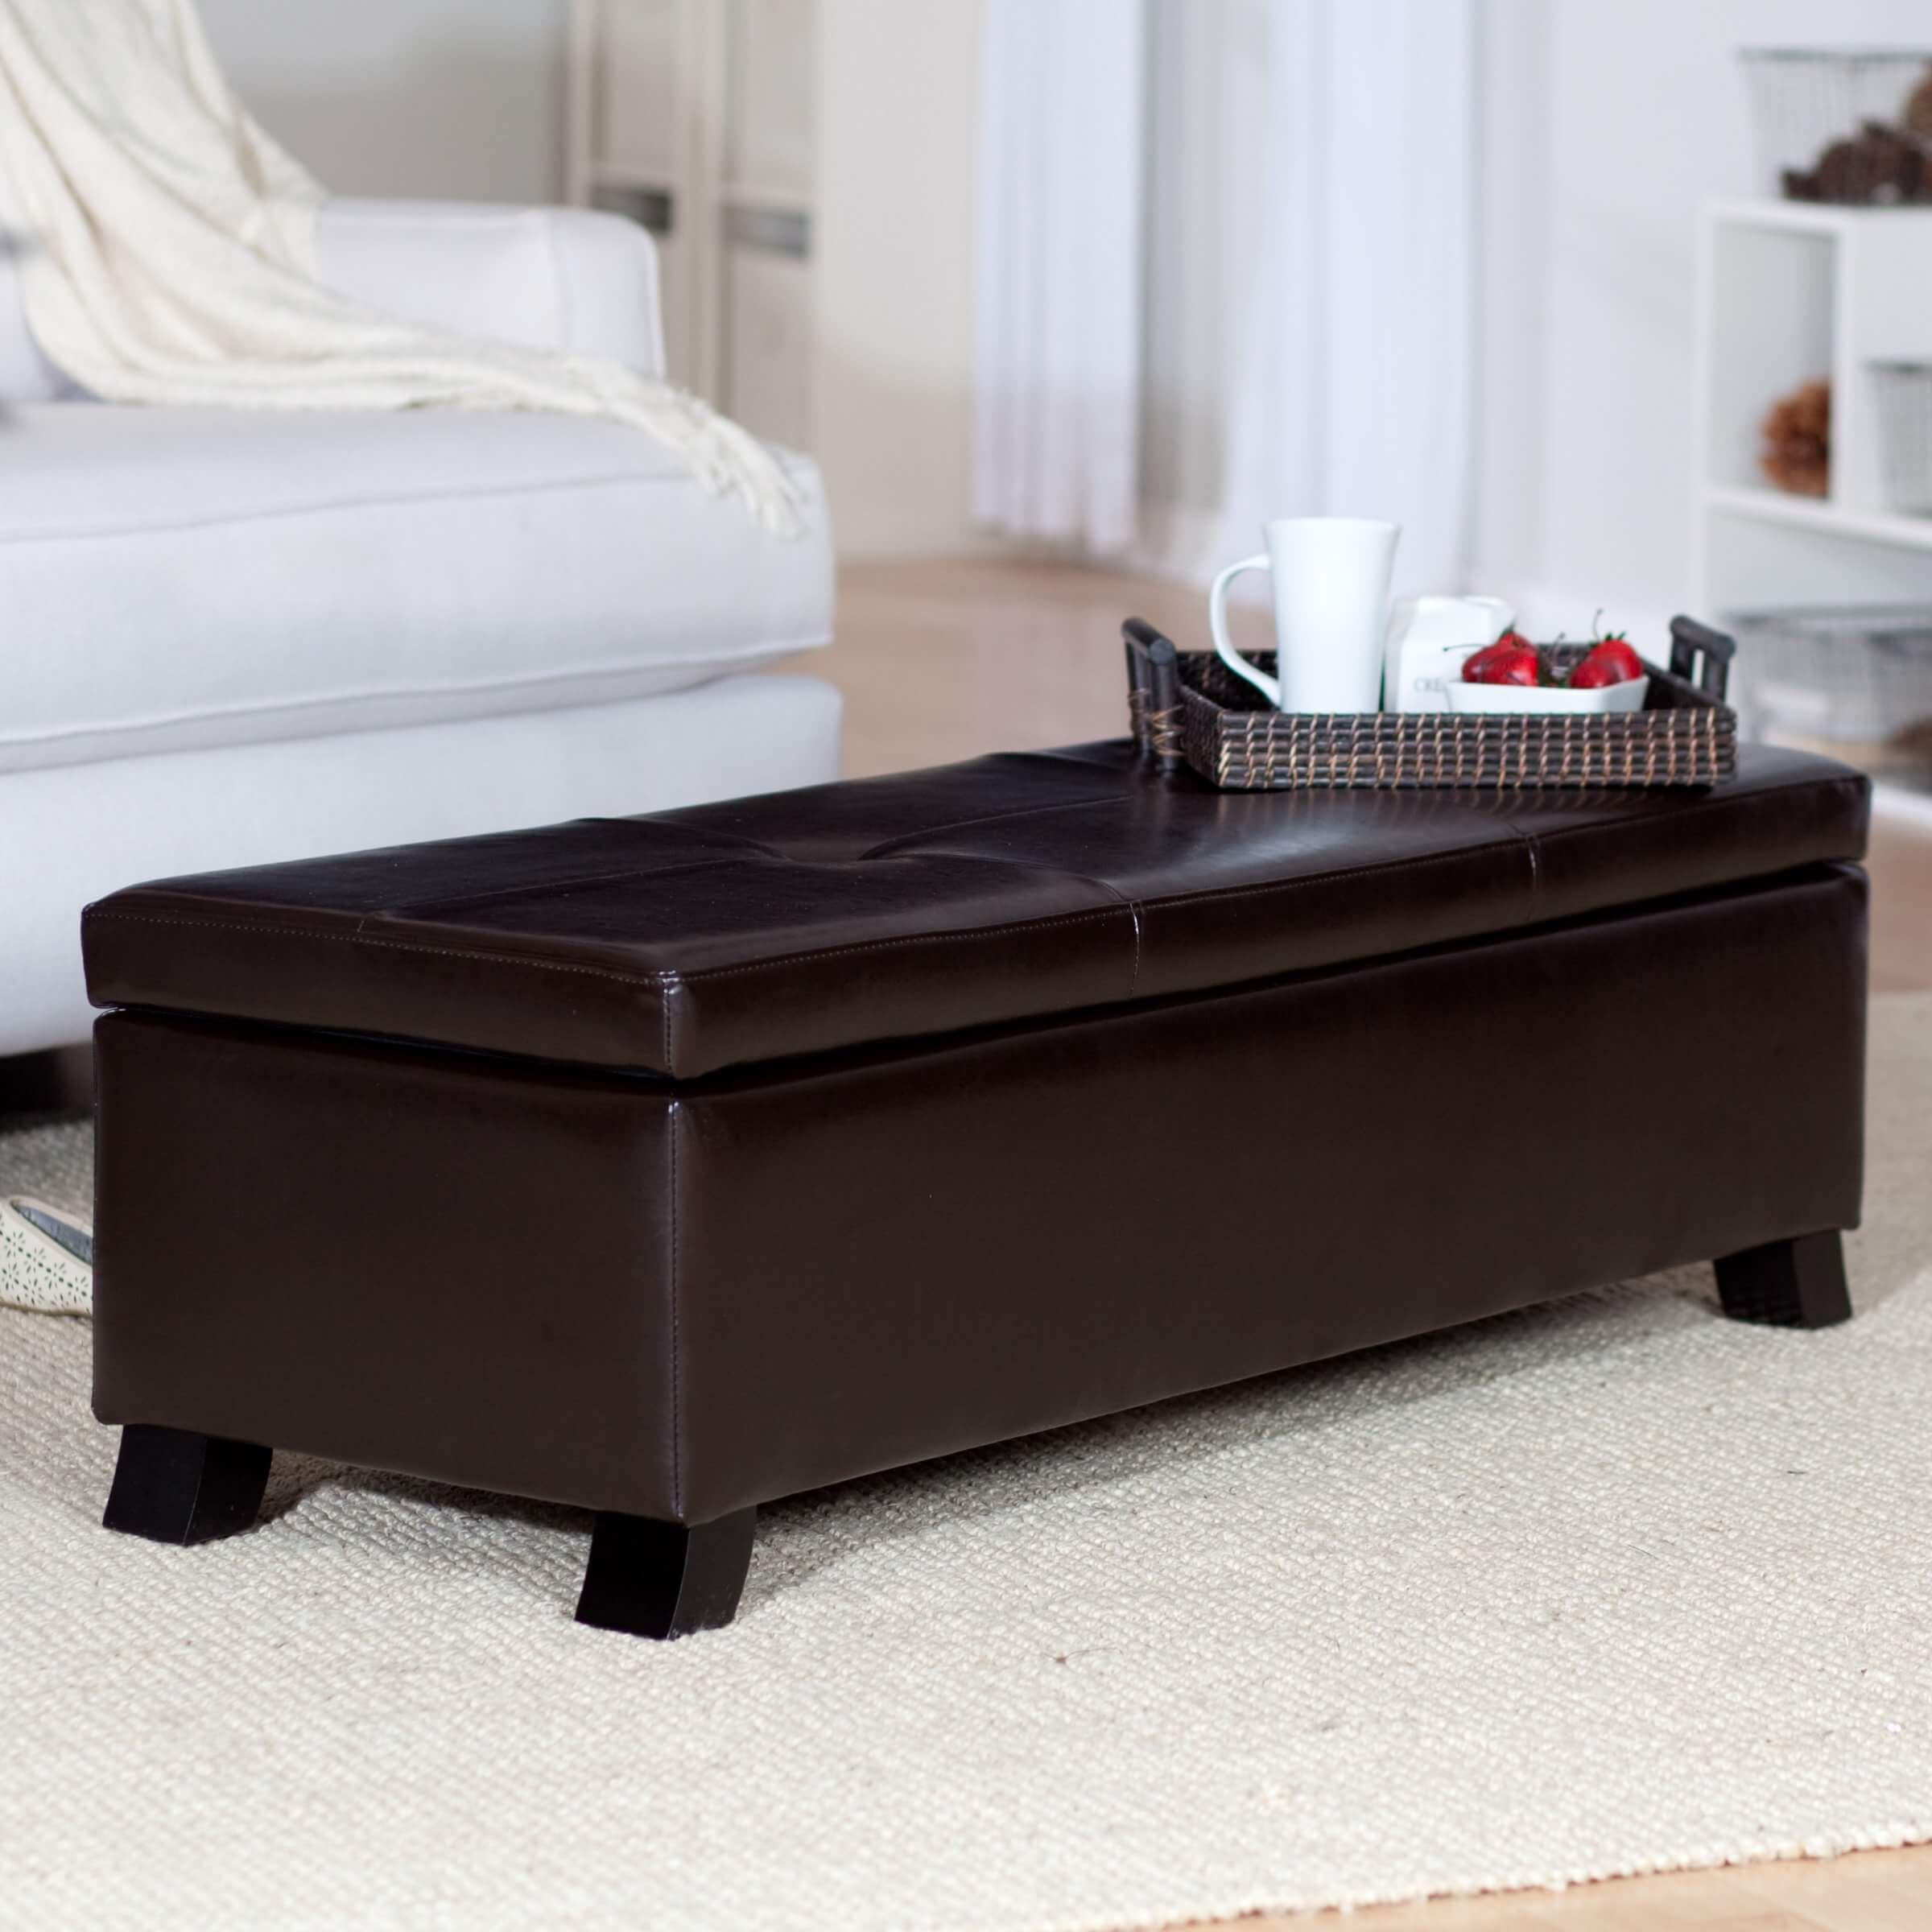 Top Brown Leather Ottoman Coffee Tables - Coffee table upholstered round ottoman coffee table uk round coffee